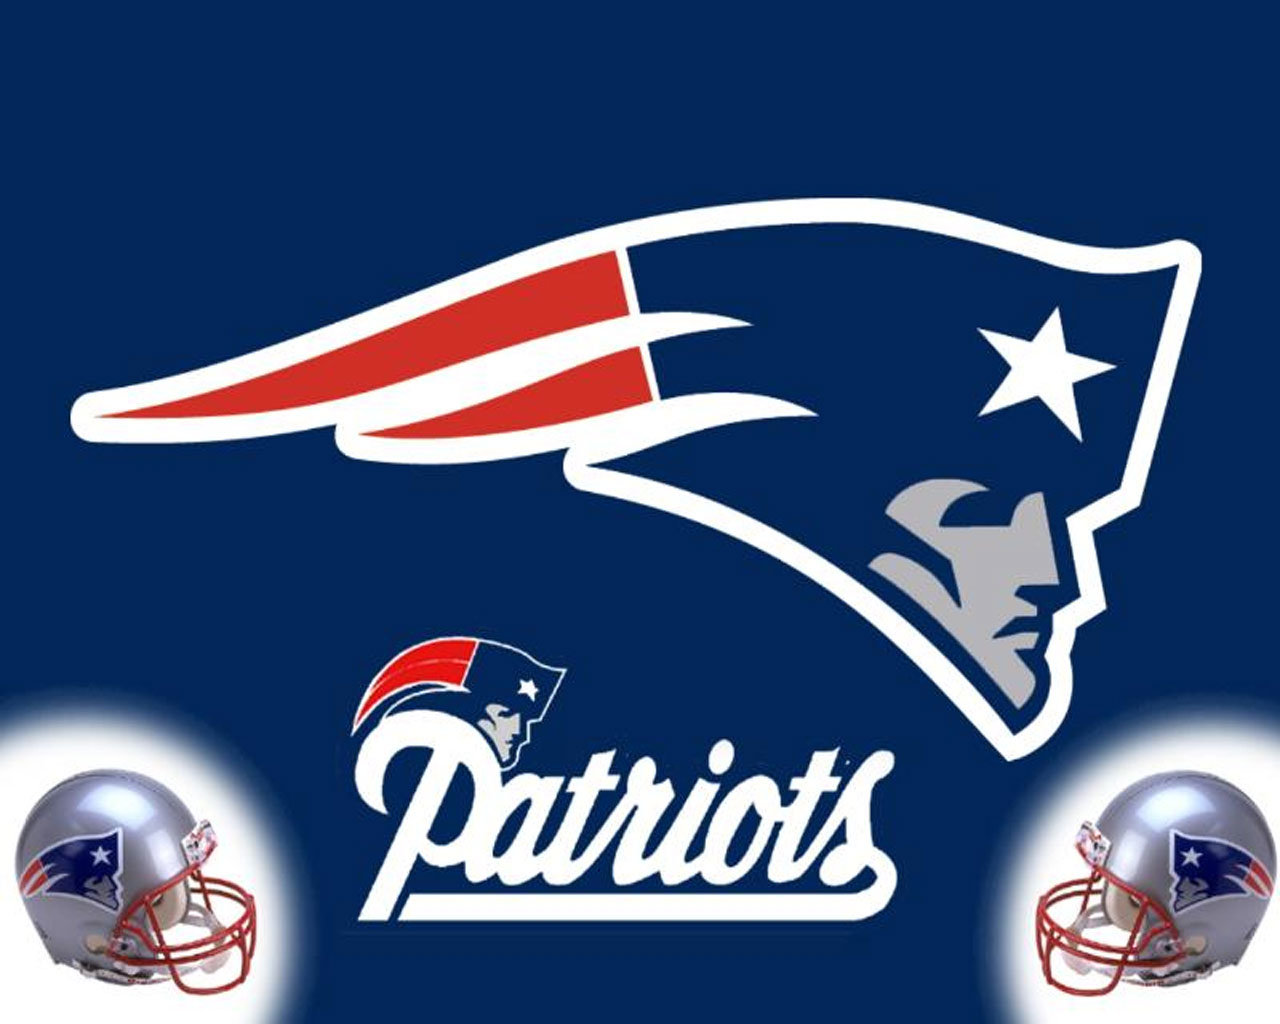 Download Hd 1280x1024 New England Patriots Computer Background ID247306 For Free